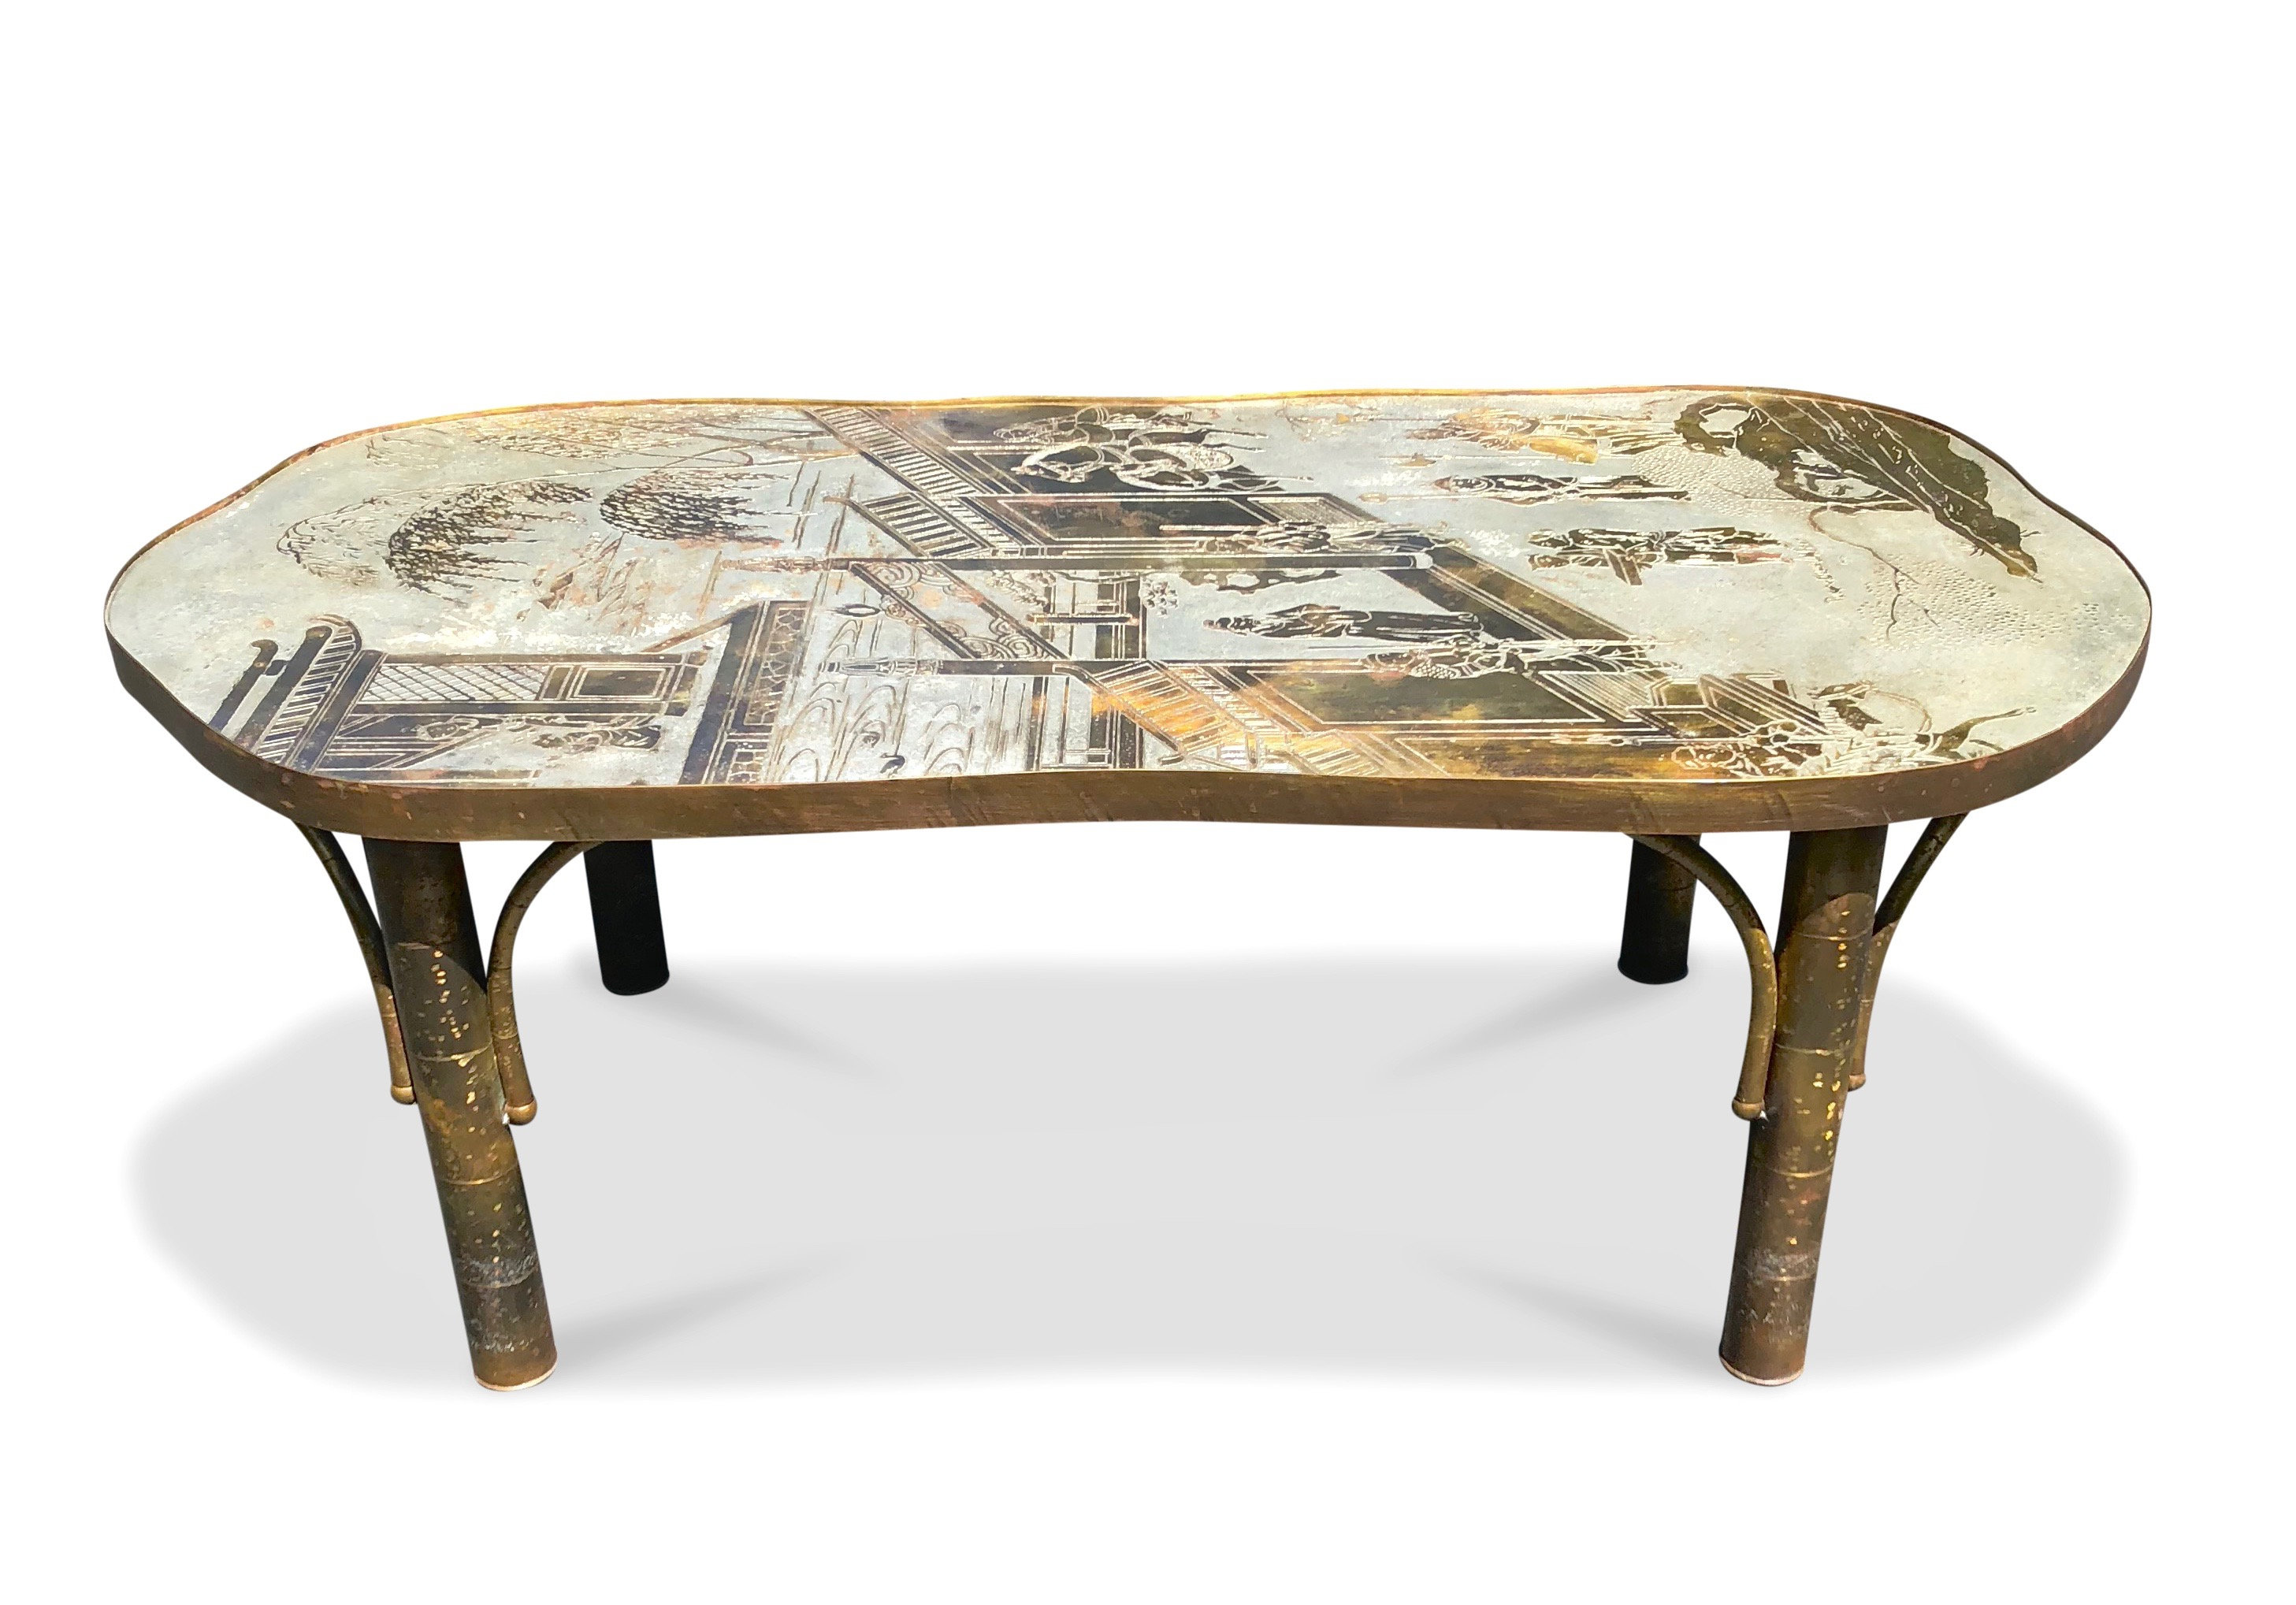 Philip Laverne Coffee Table.1489 Philip Kelvin La Verne Chan 140 Coffee Table 1960s Signed On Top